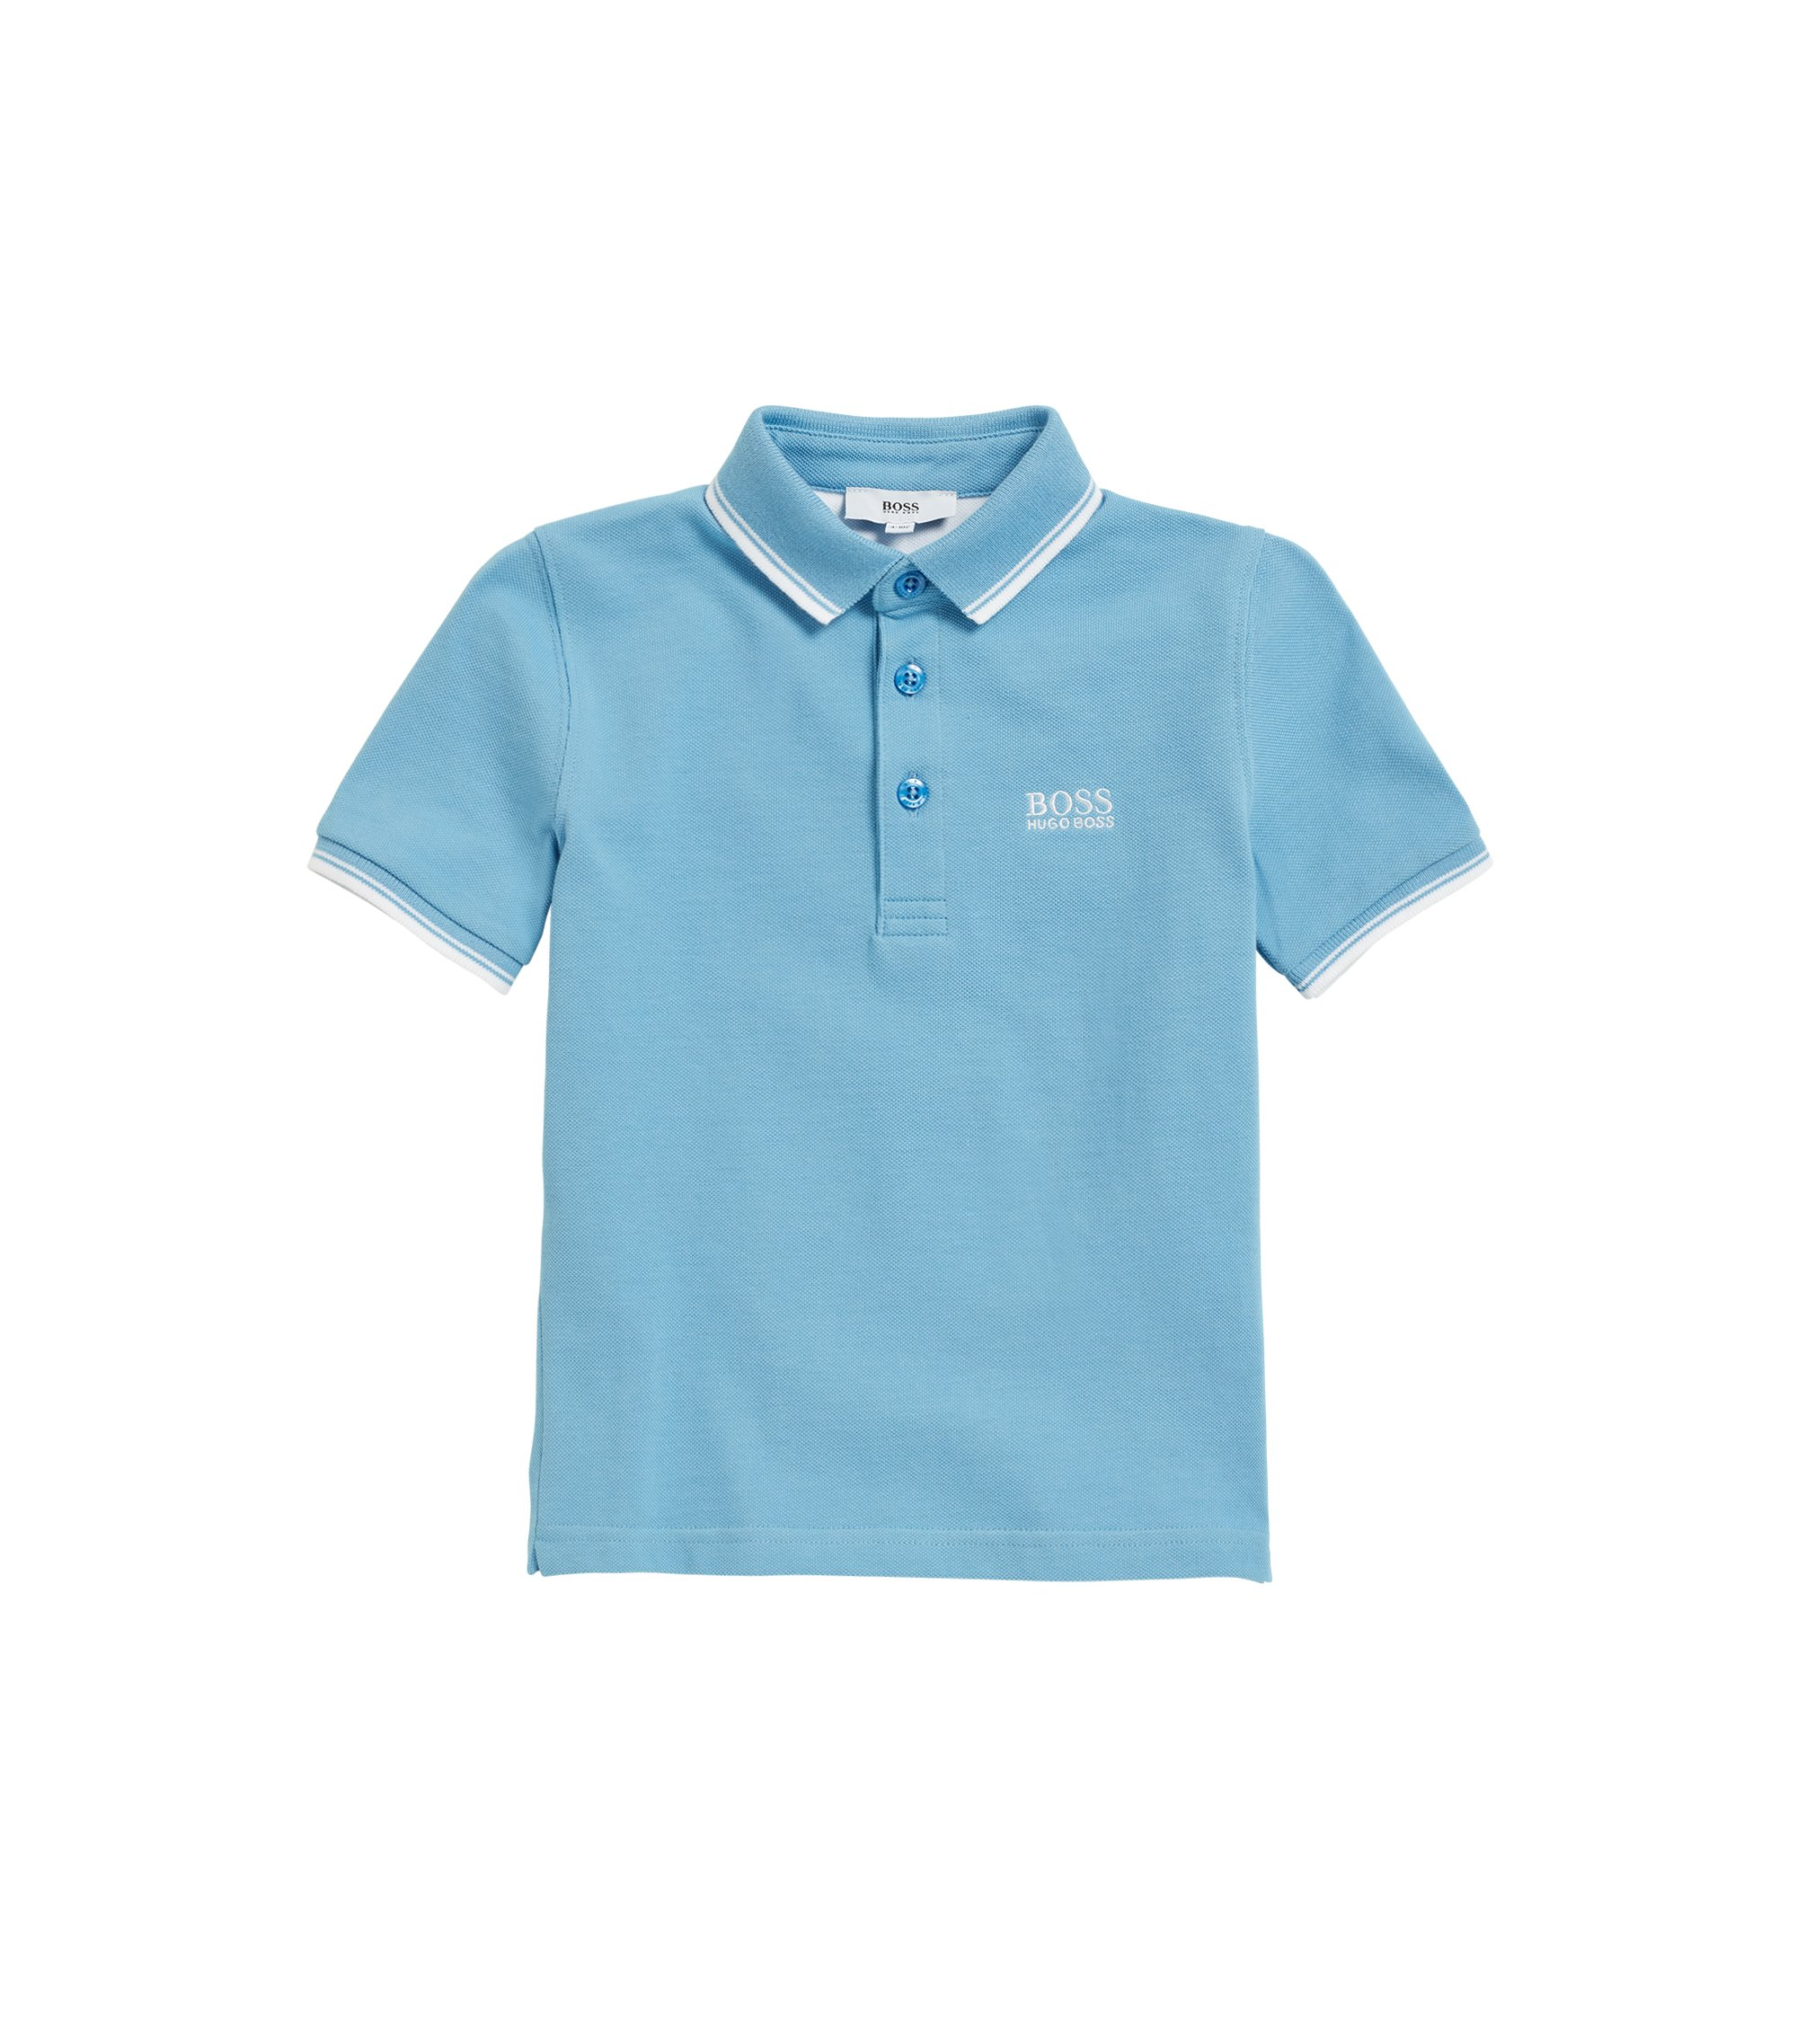 Kids' cotton polo shirt with undercollar print, Turquoise